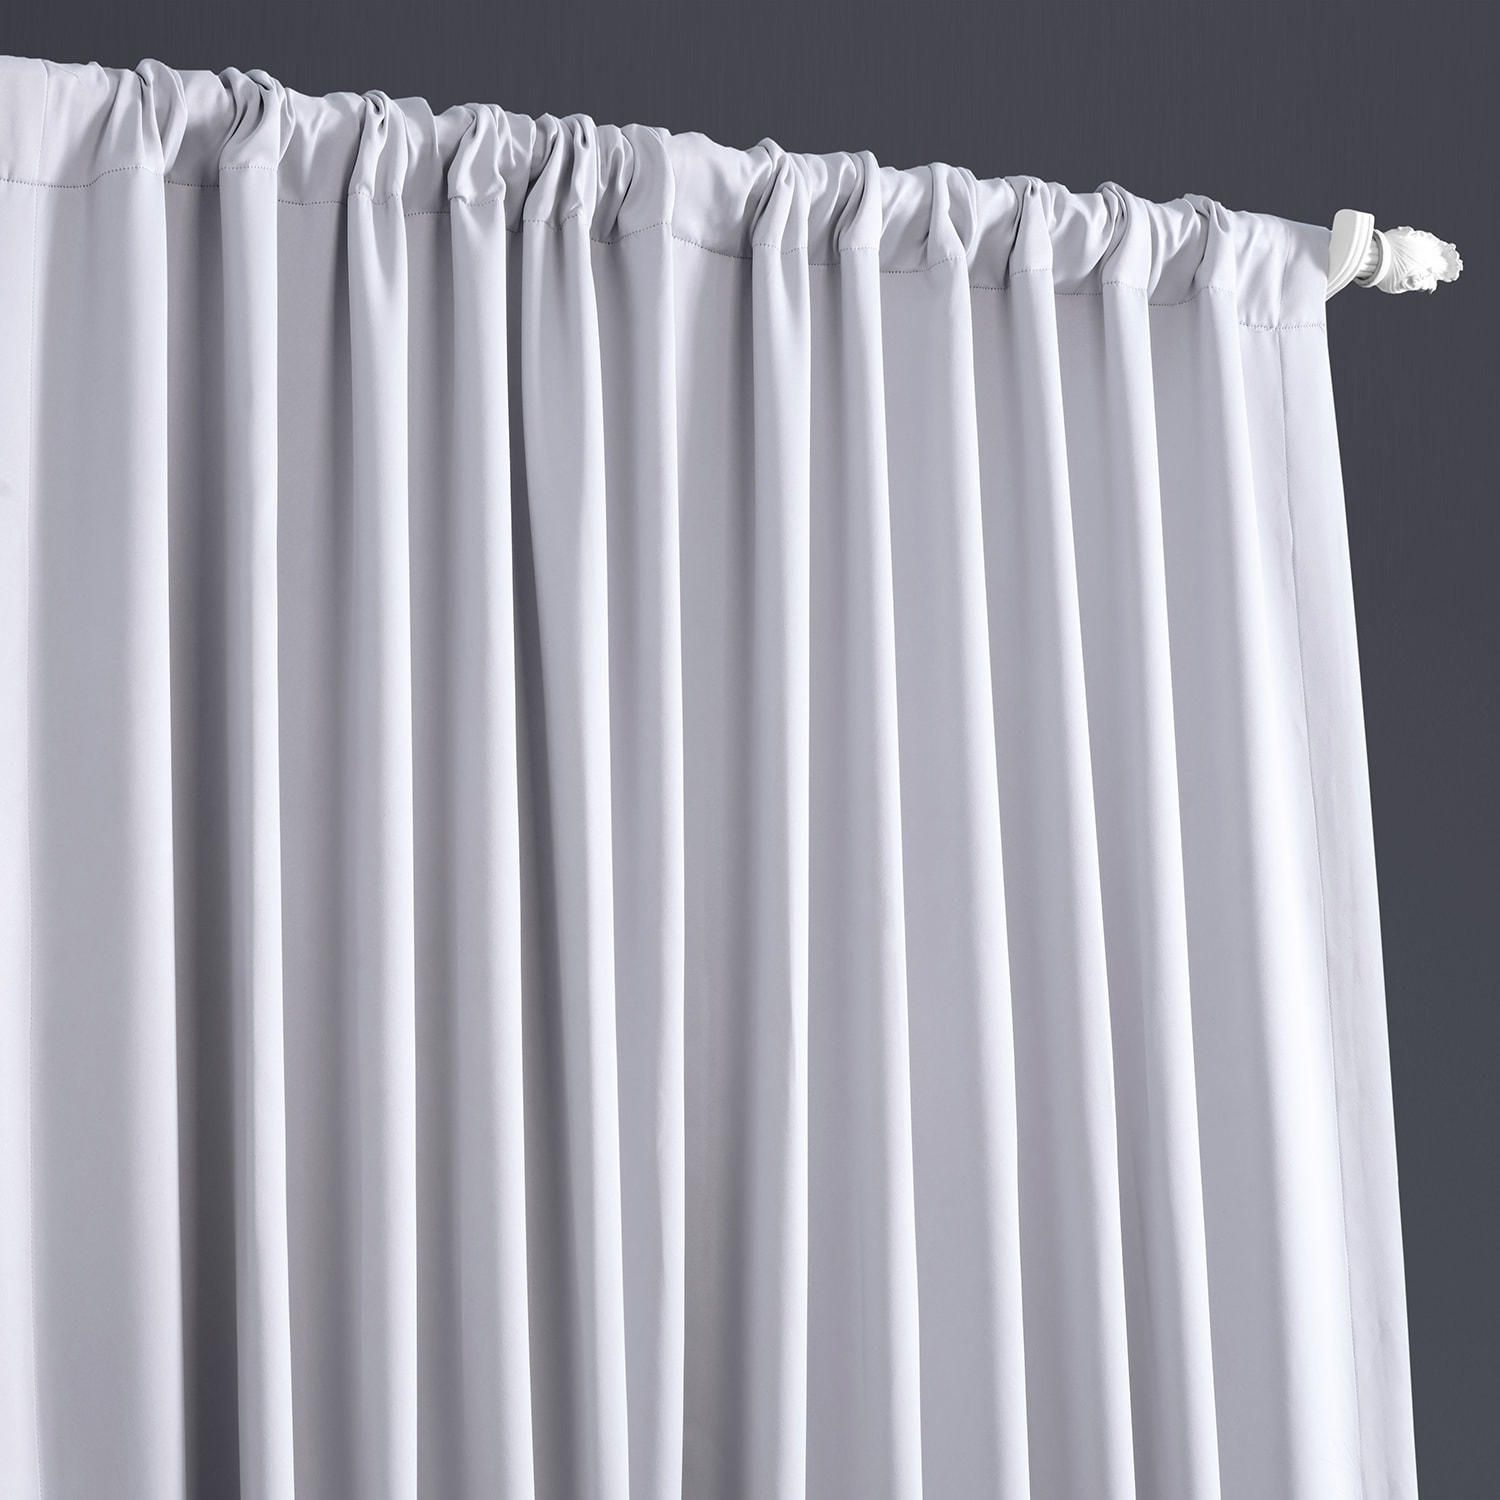 Fog Grey Extrawide Blackout Room Darkening Curtain